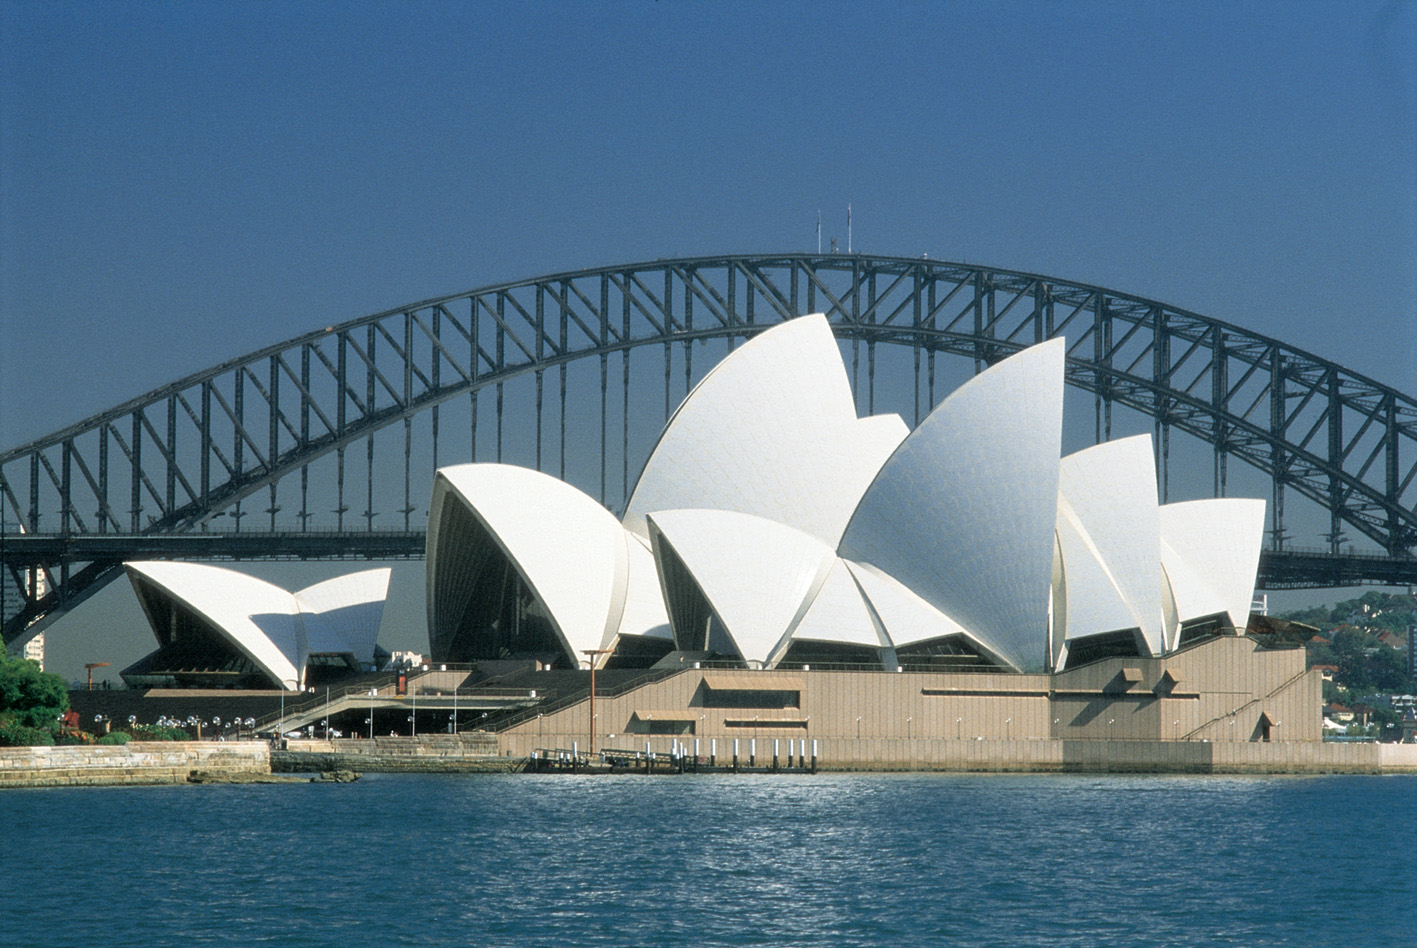 Quia world wonders tour for Sydney opera housse